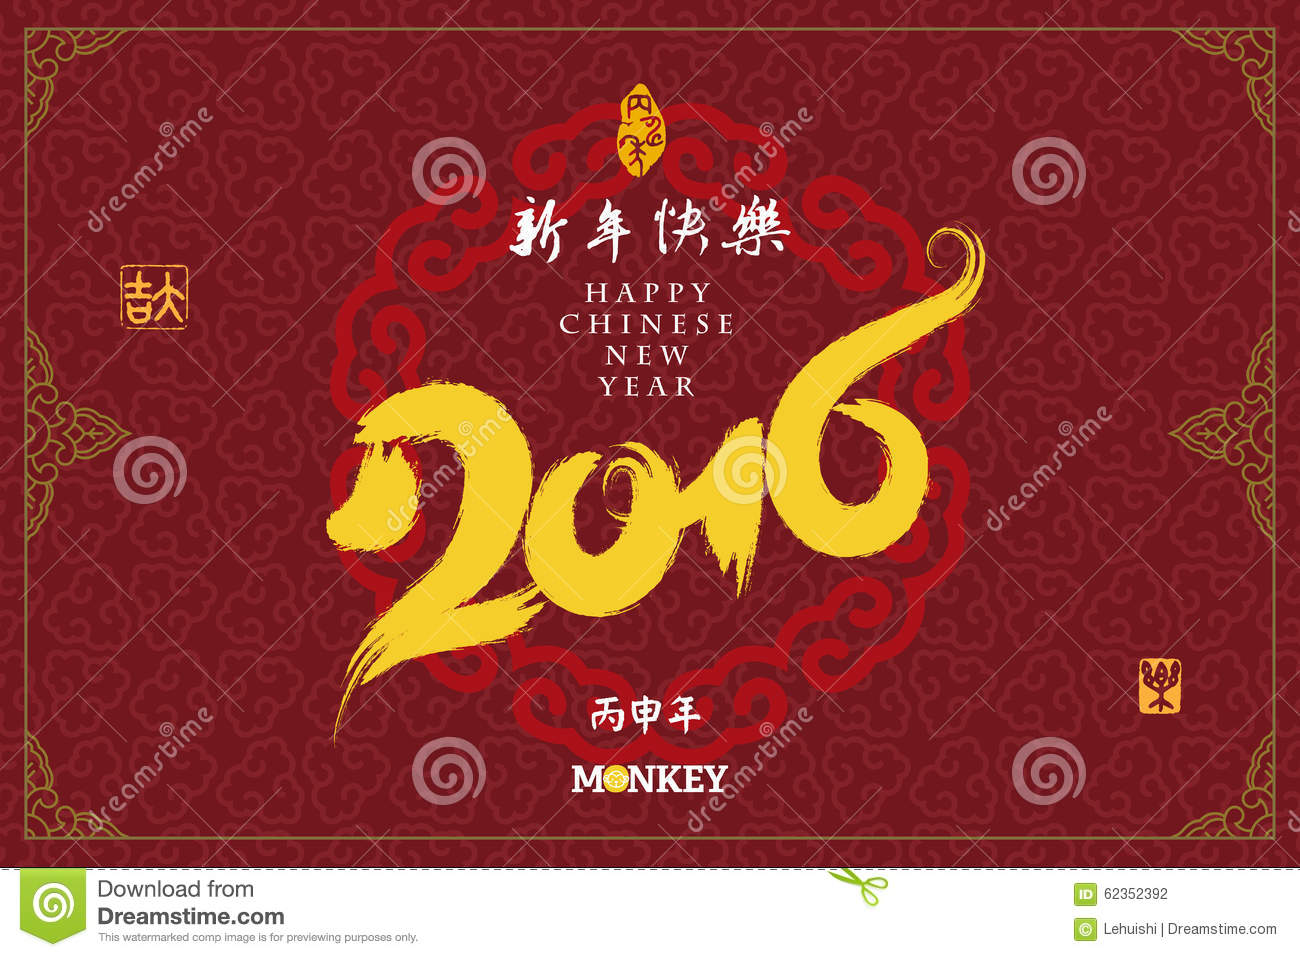 ... Lunar Year, Chinese meaning is: Year of the monkey, Happy New Year